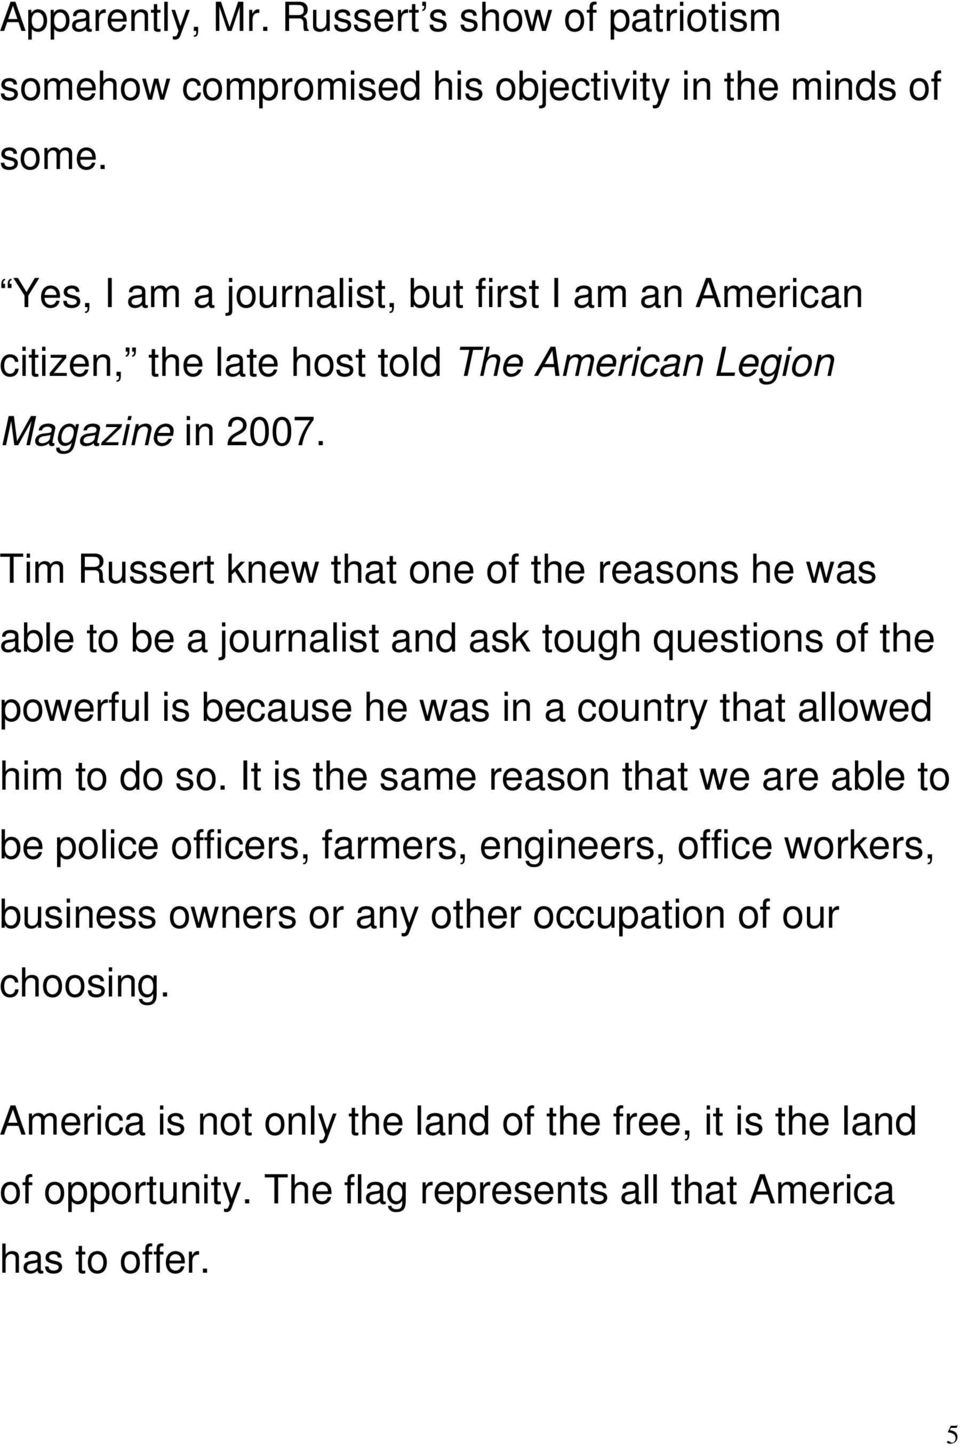 Tim Russert knew that one of the reasons he was able to be a journalist and ask tough questions of the powerful is because he was in a country that allowed him to do